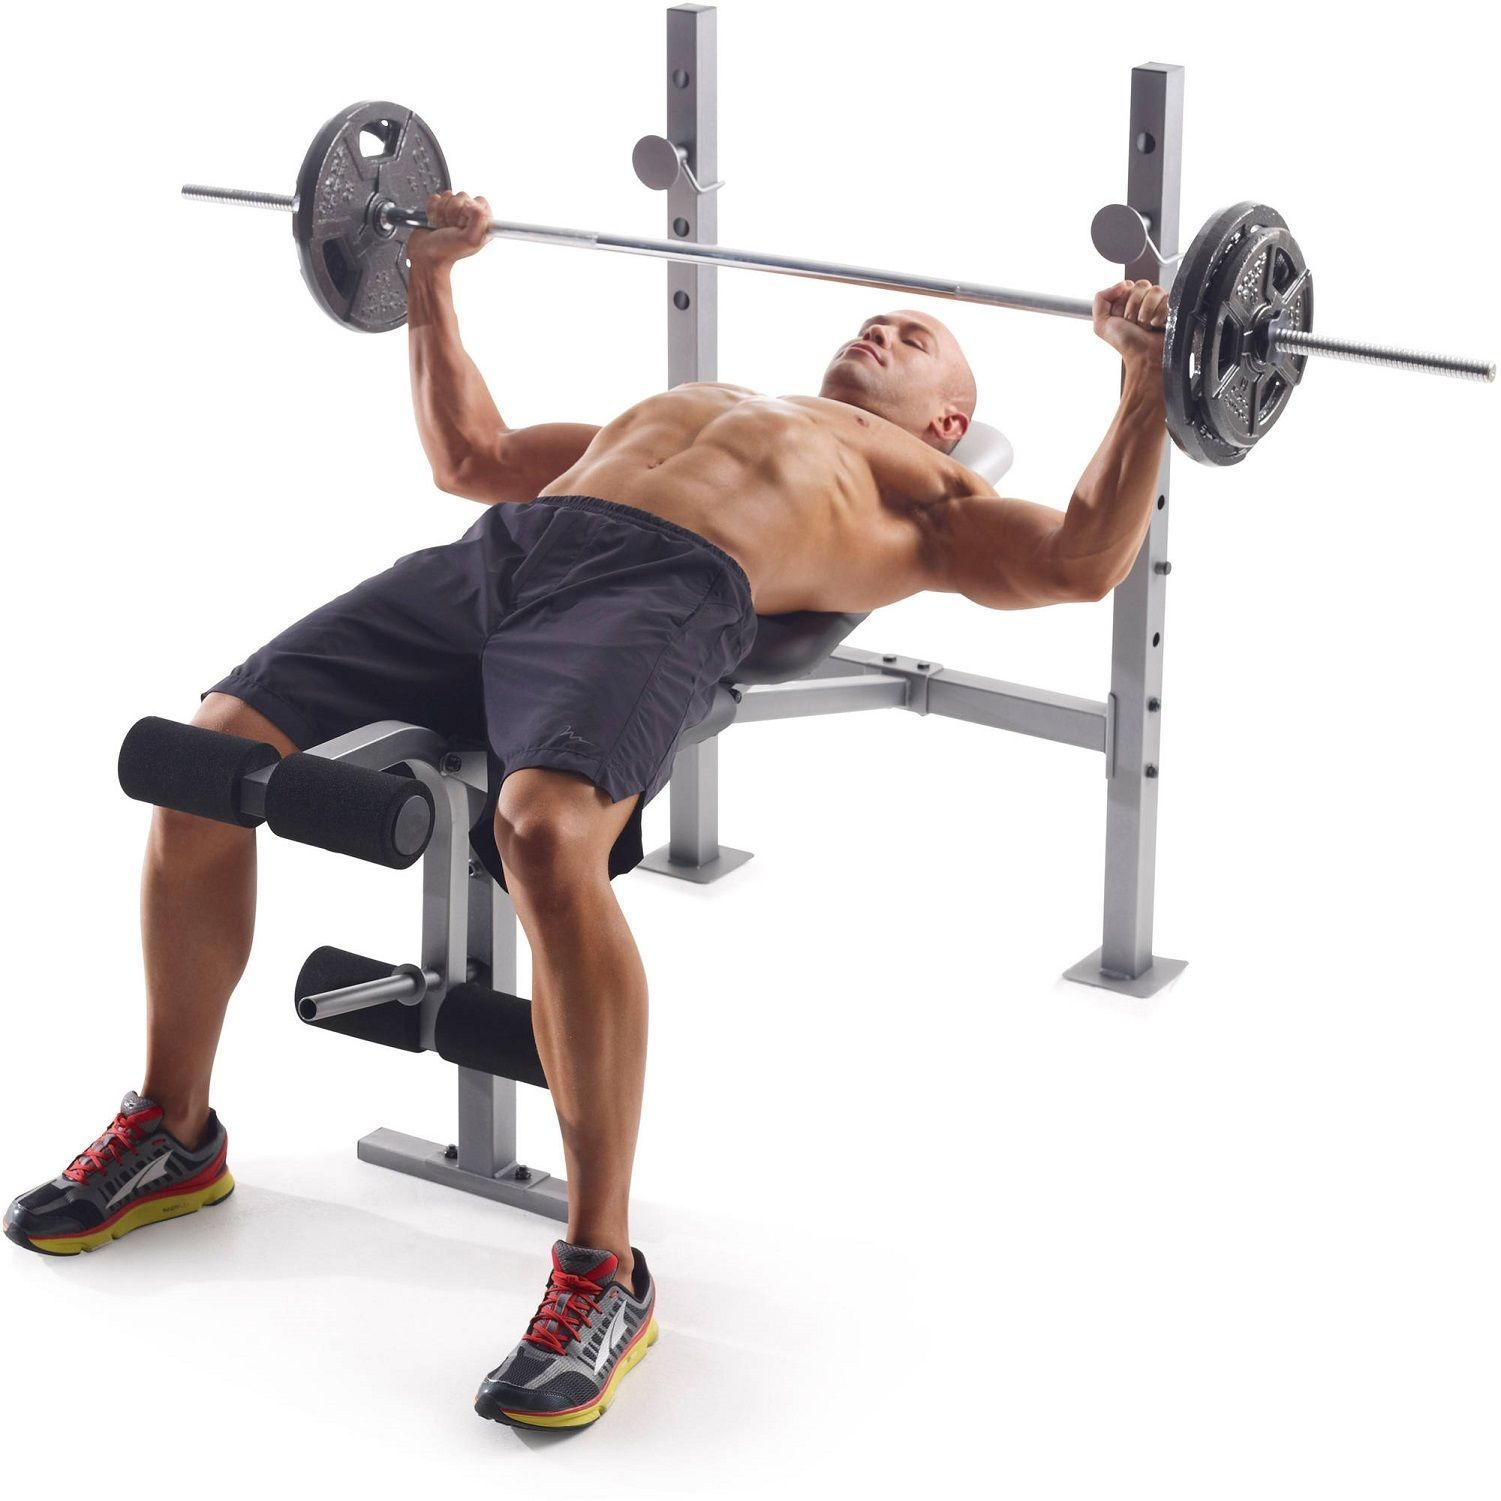 Combo gym weight bench multi position 4 roll leg fitness traning combo gym weight bench multi position 4 roll leg fitness traning work out new nvjuhfo Image collections